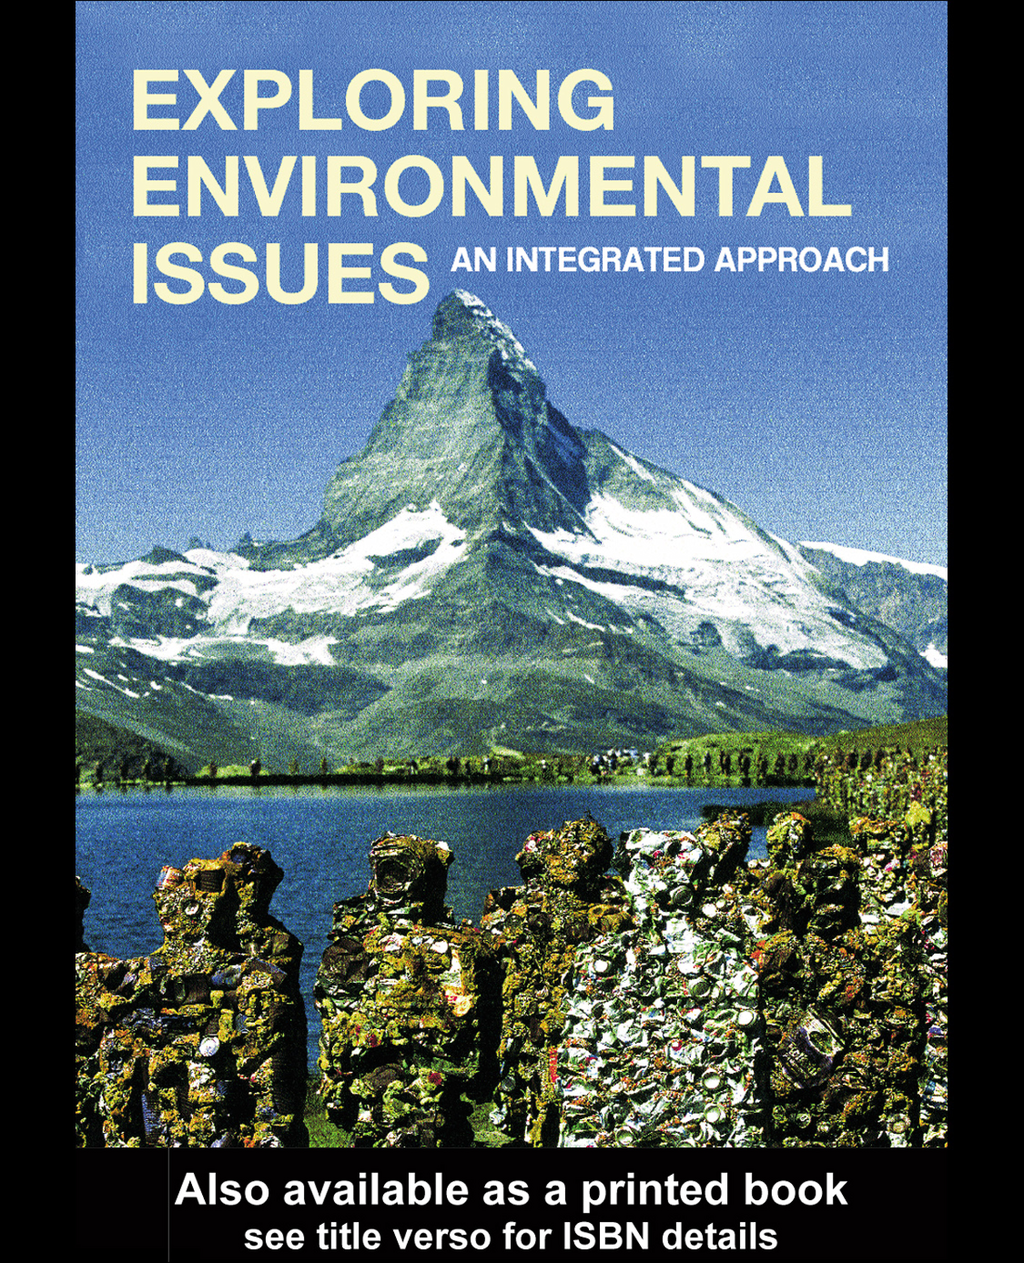 Exploring Environmental Issues An Integrated Approach